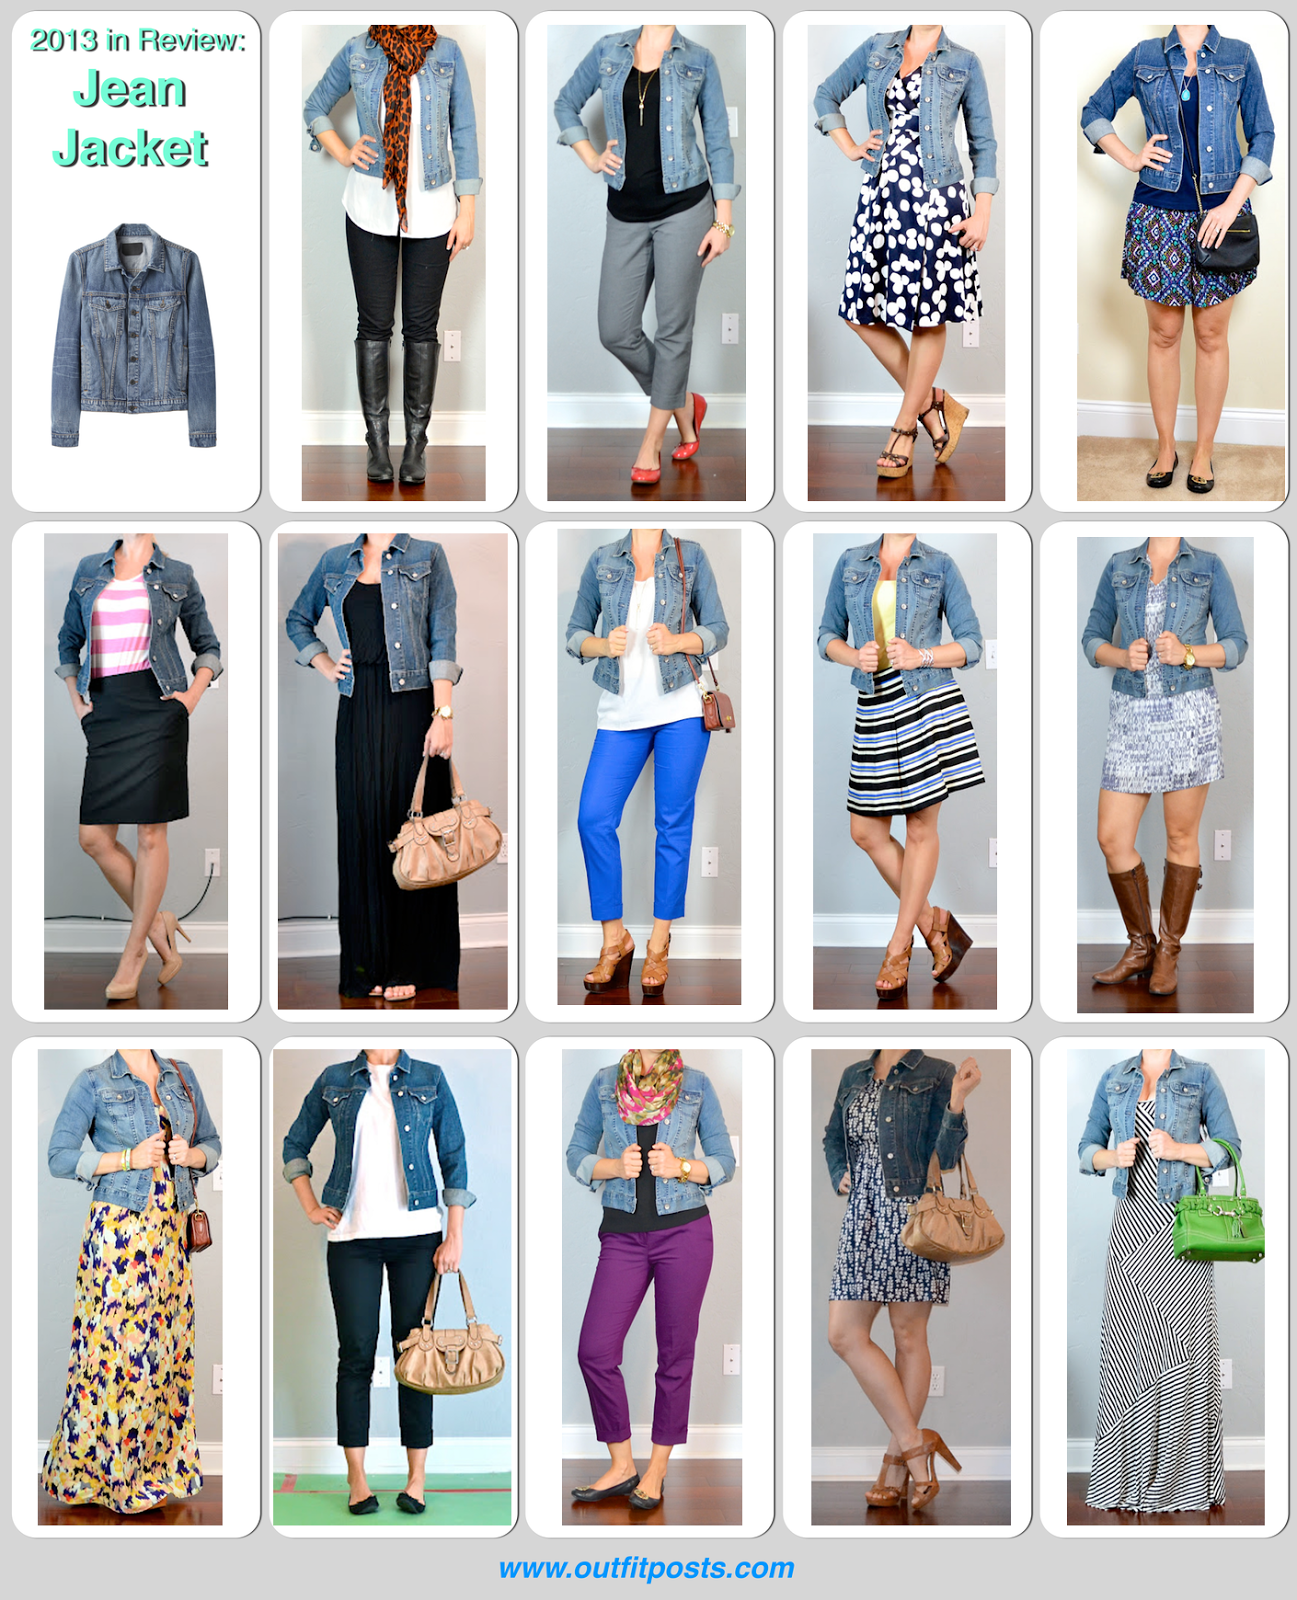 8c75b10a27 2013 in review - outift posts: jean jacket (Outfit Posts) | Its a ...